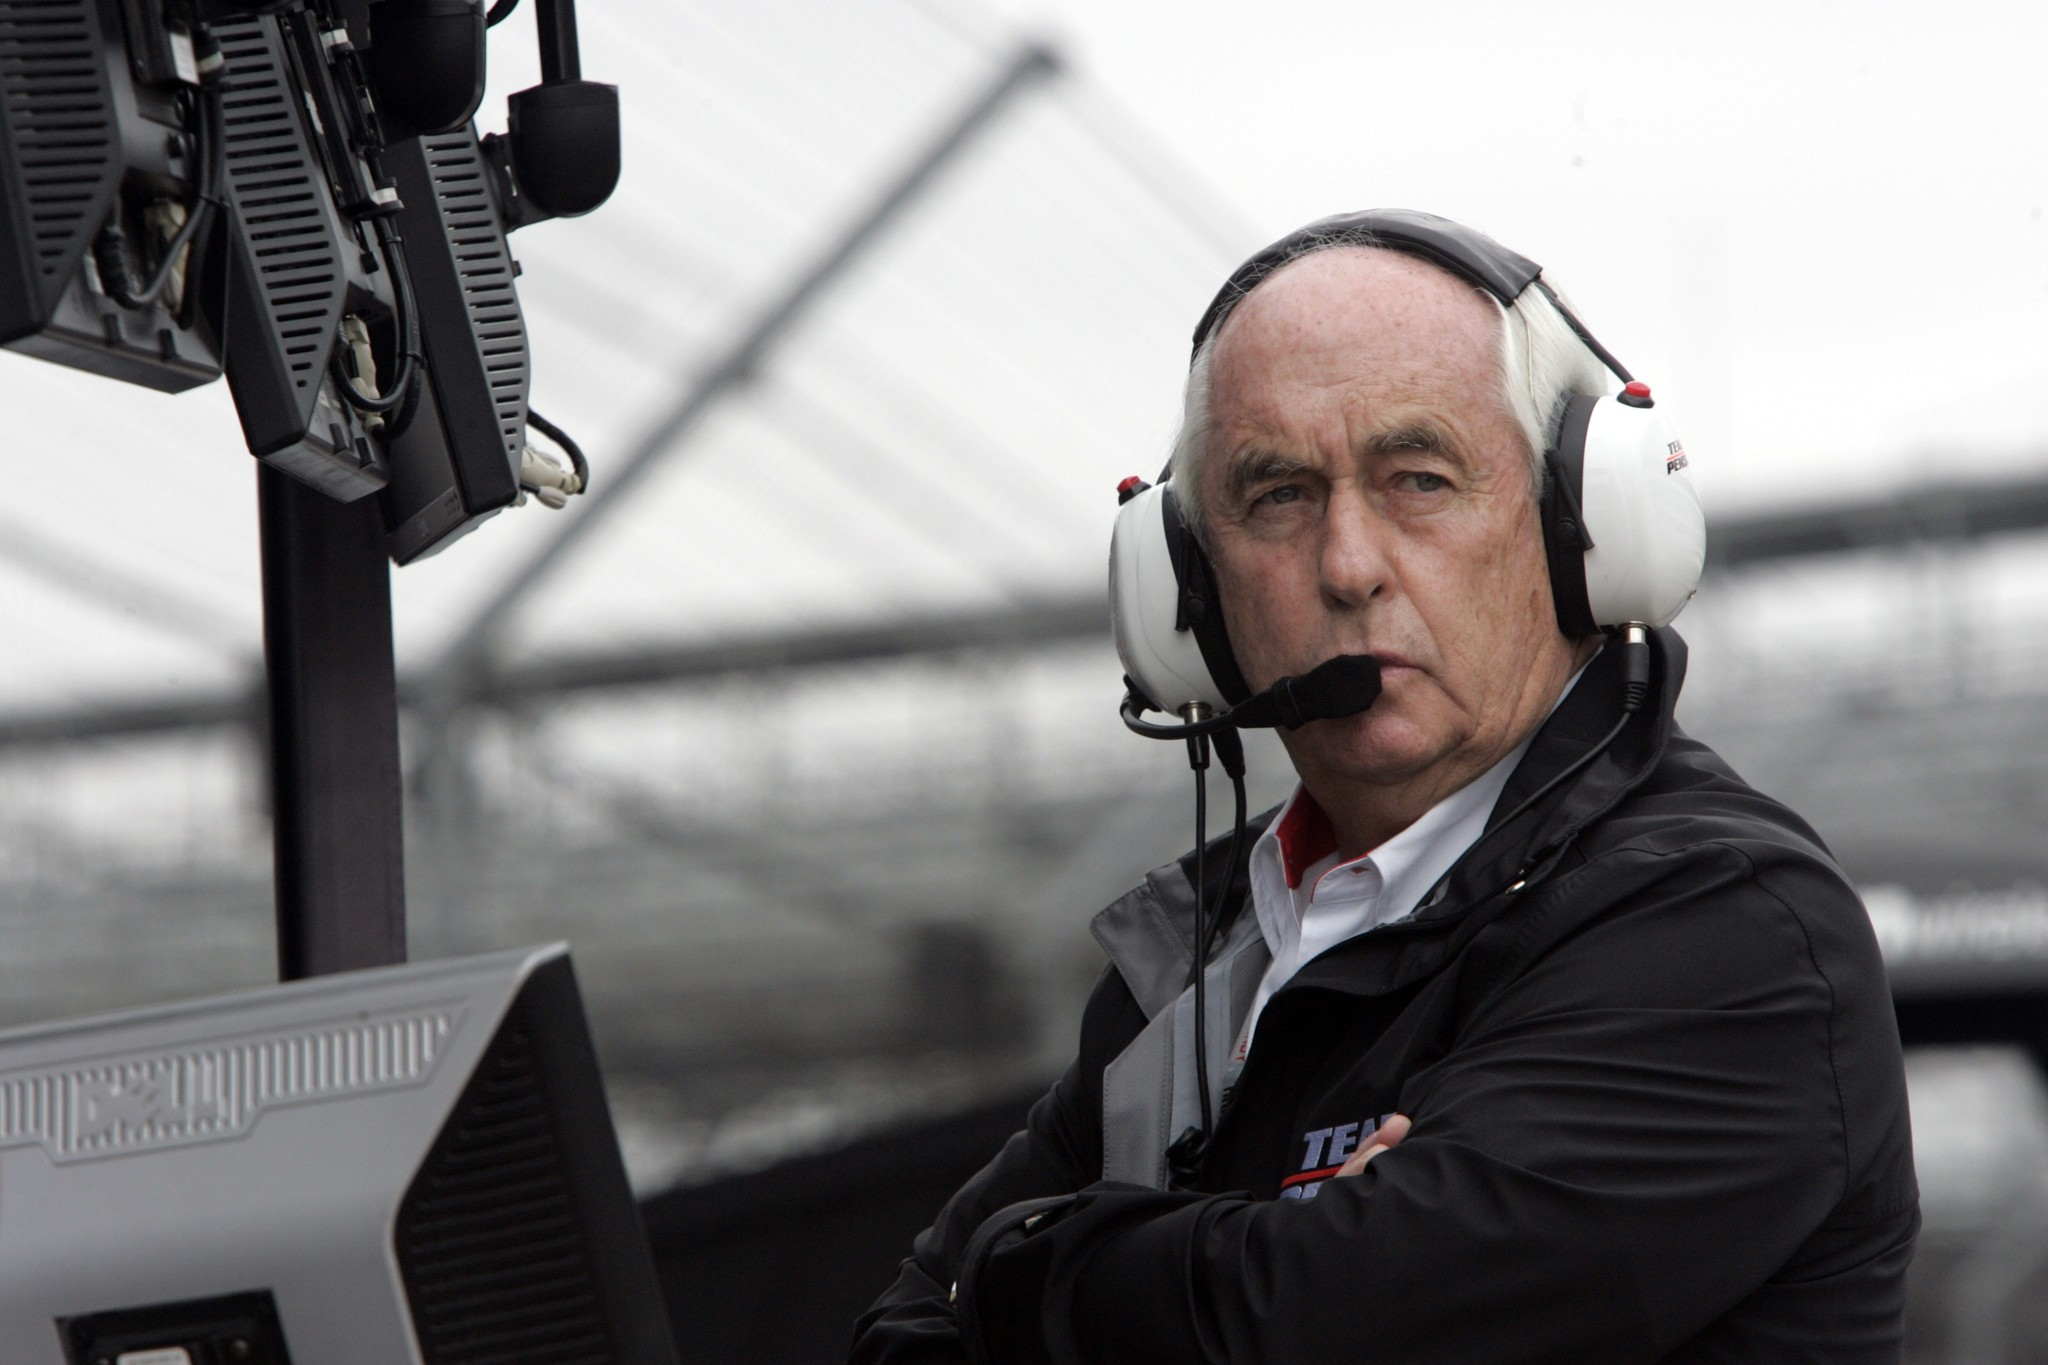 THE CAPTAIN, ROGER PENSKE.